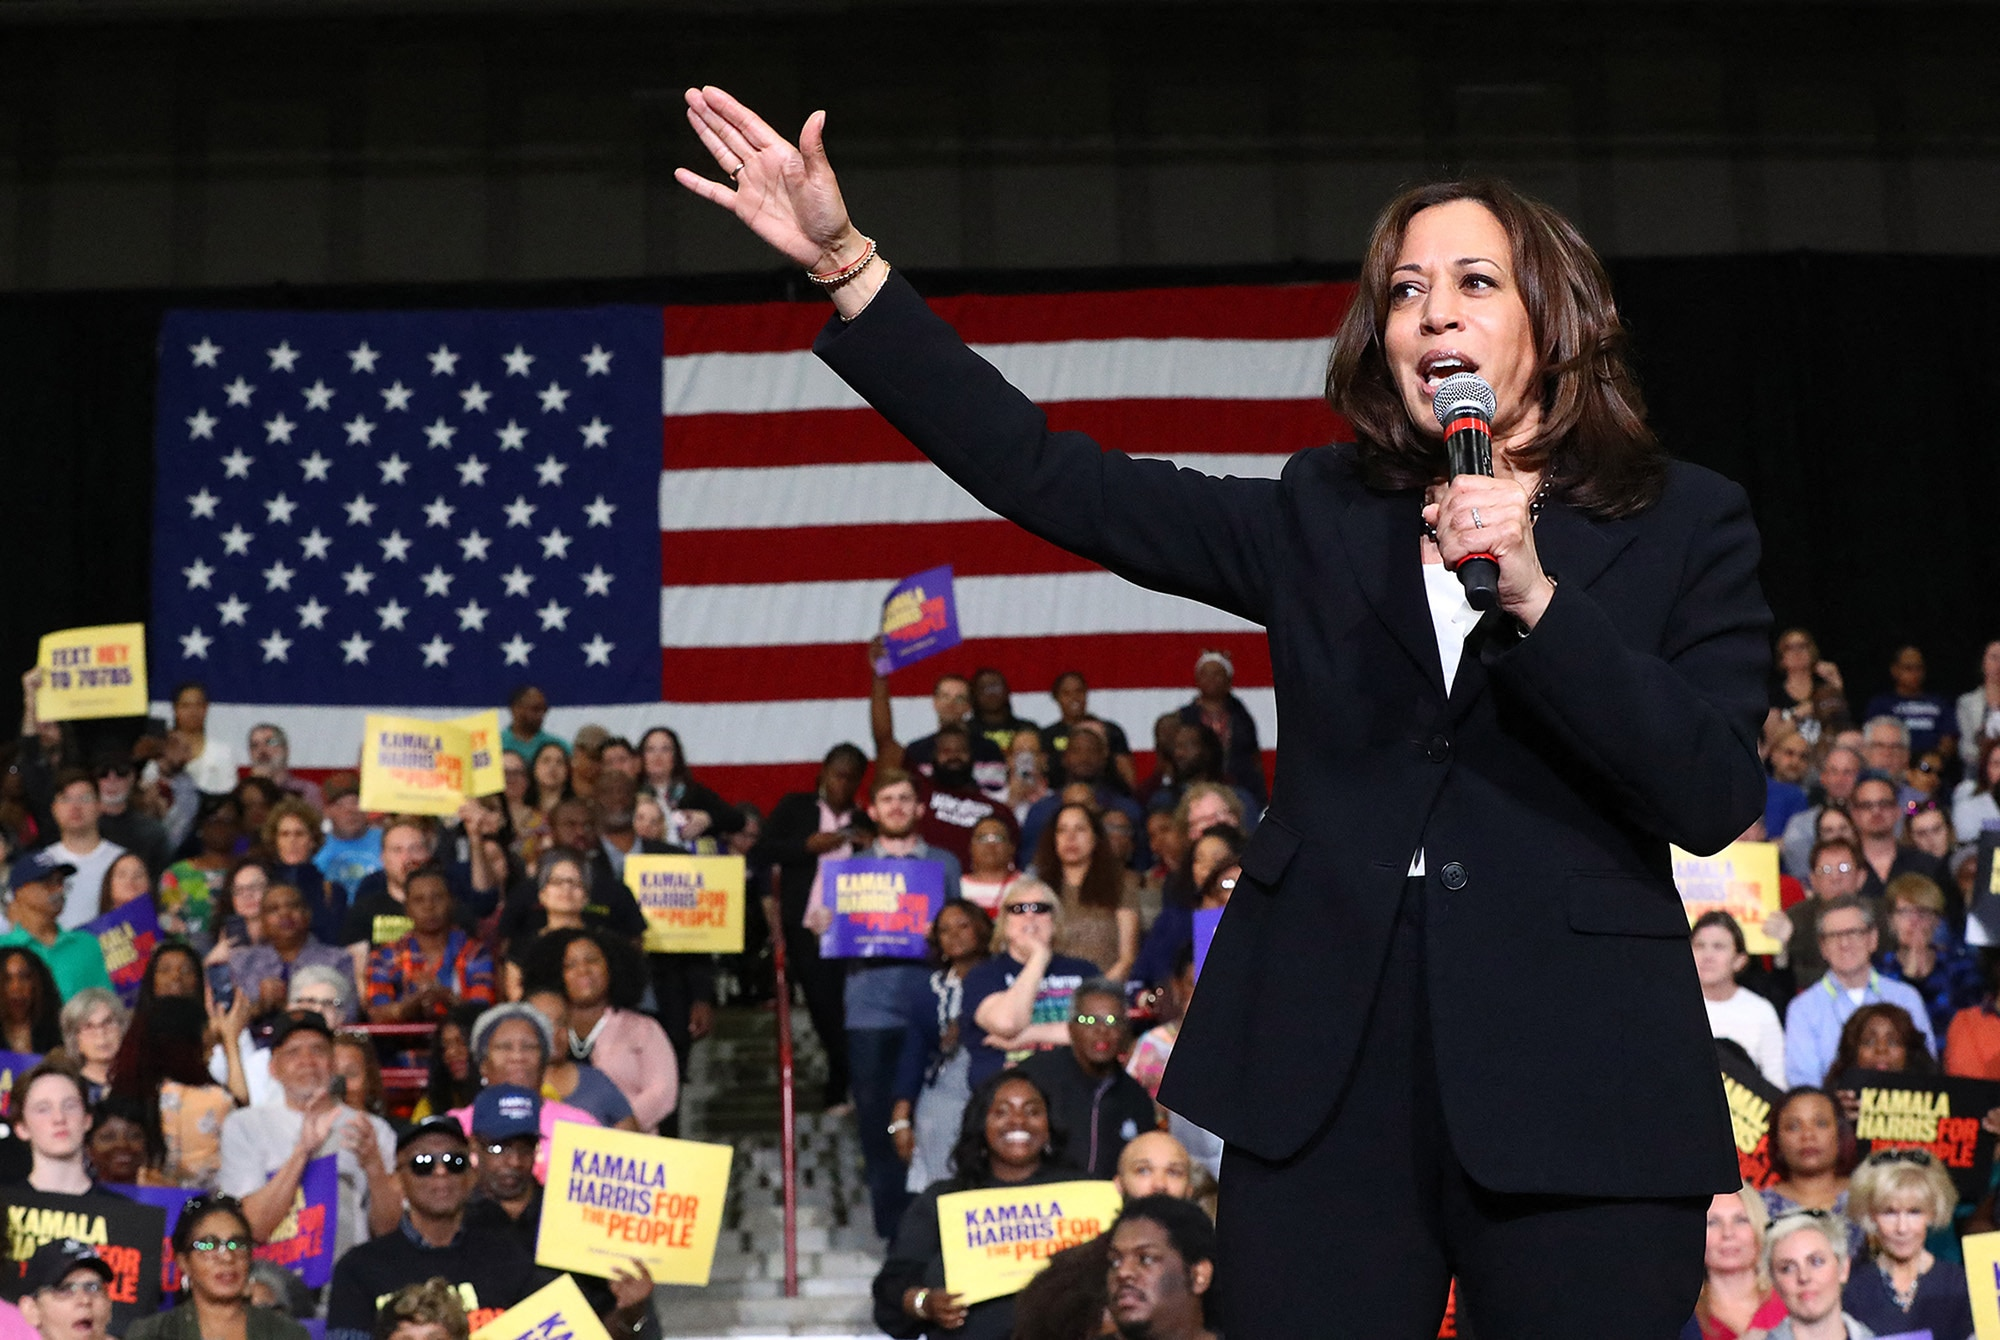 Senator Kamala Harris addresses supporters while holding a campaign rally in Atlanta in 2019.